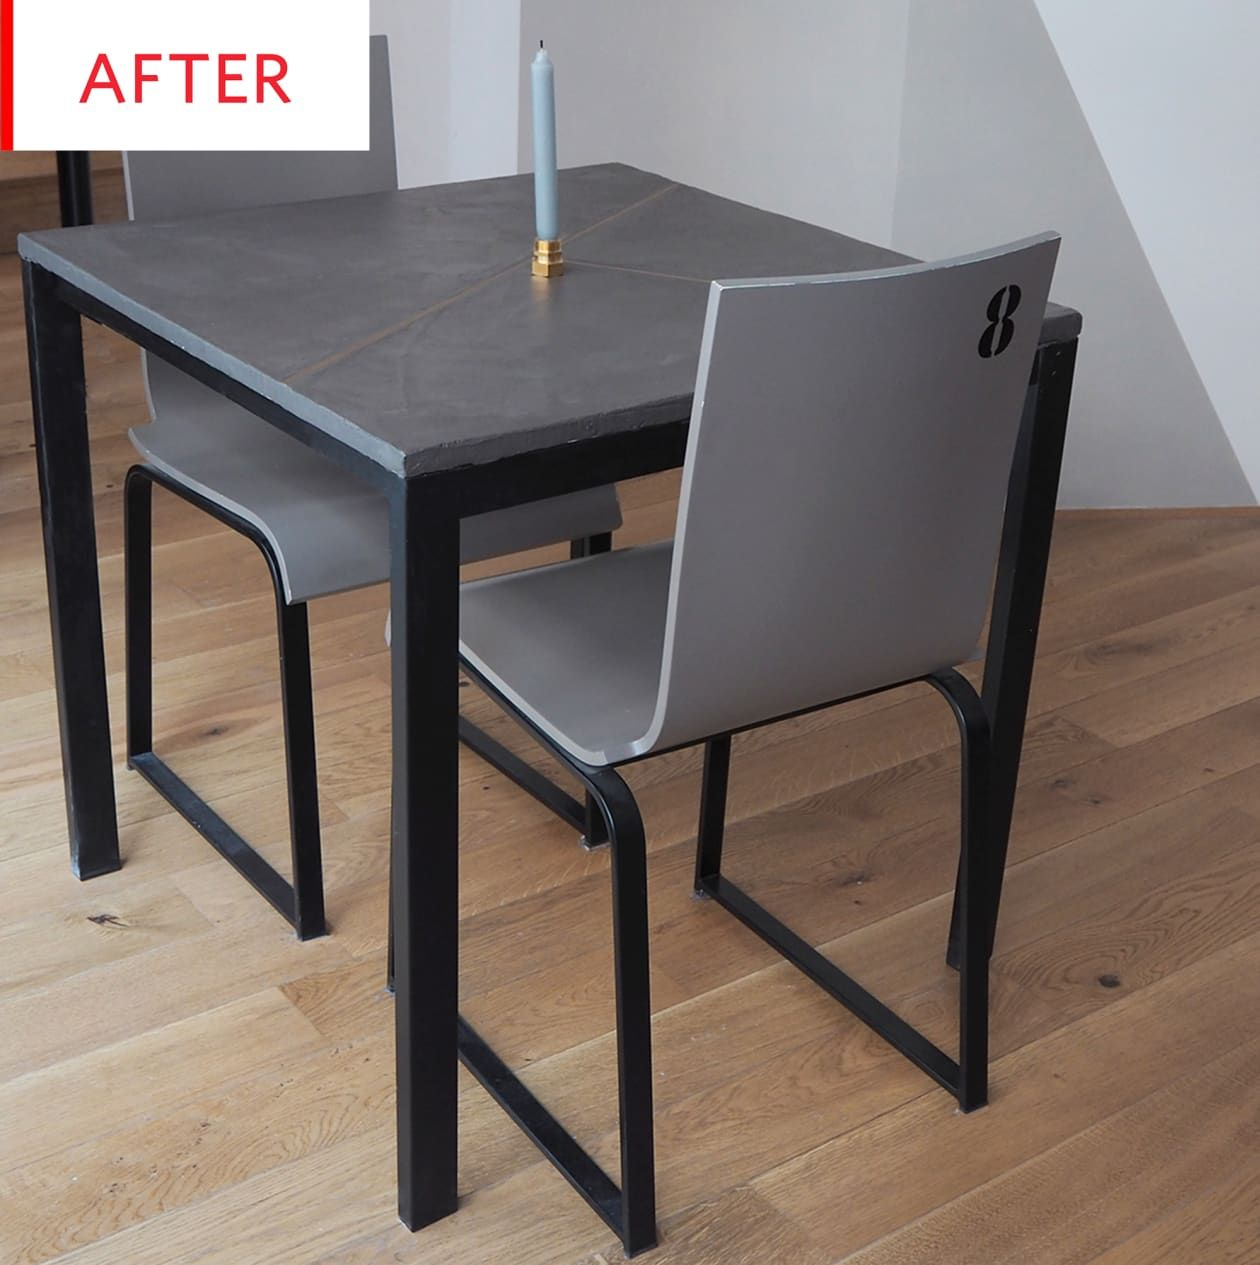 Before And After This Ikea Melltorp Table Is Now Unrecognizable